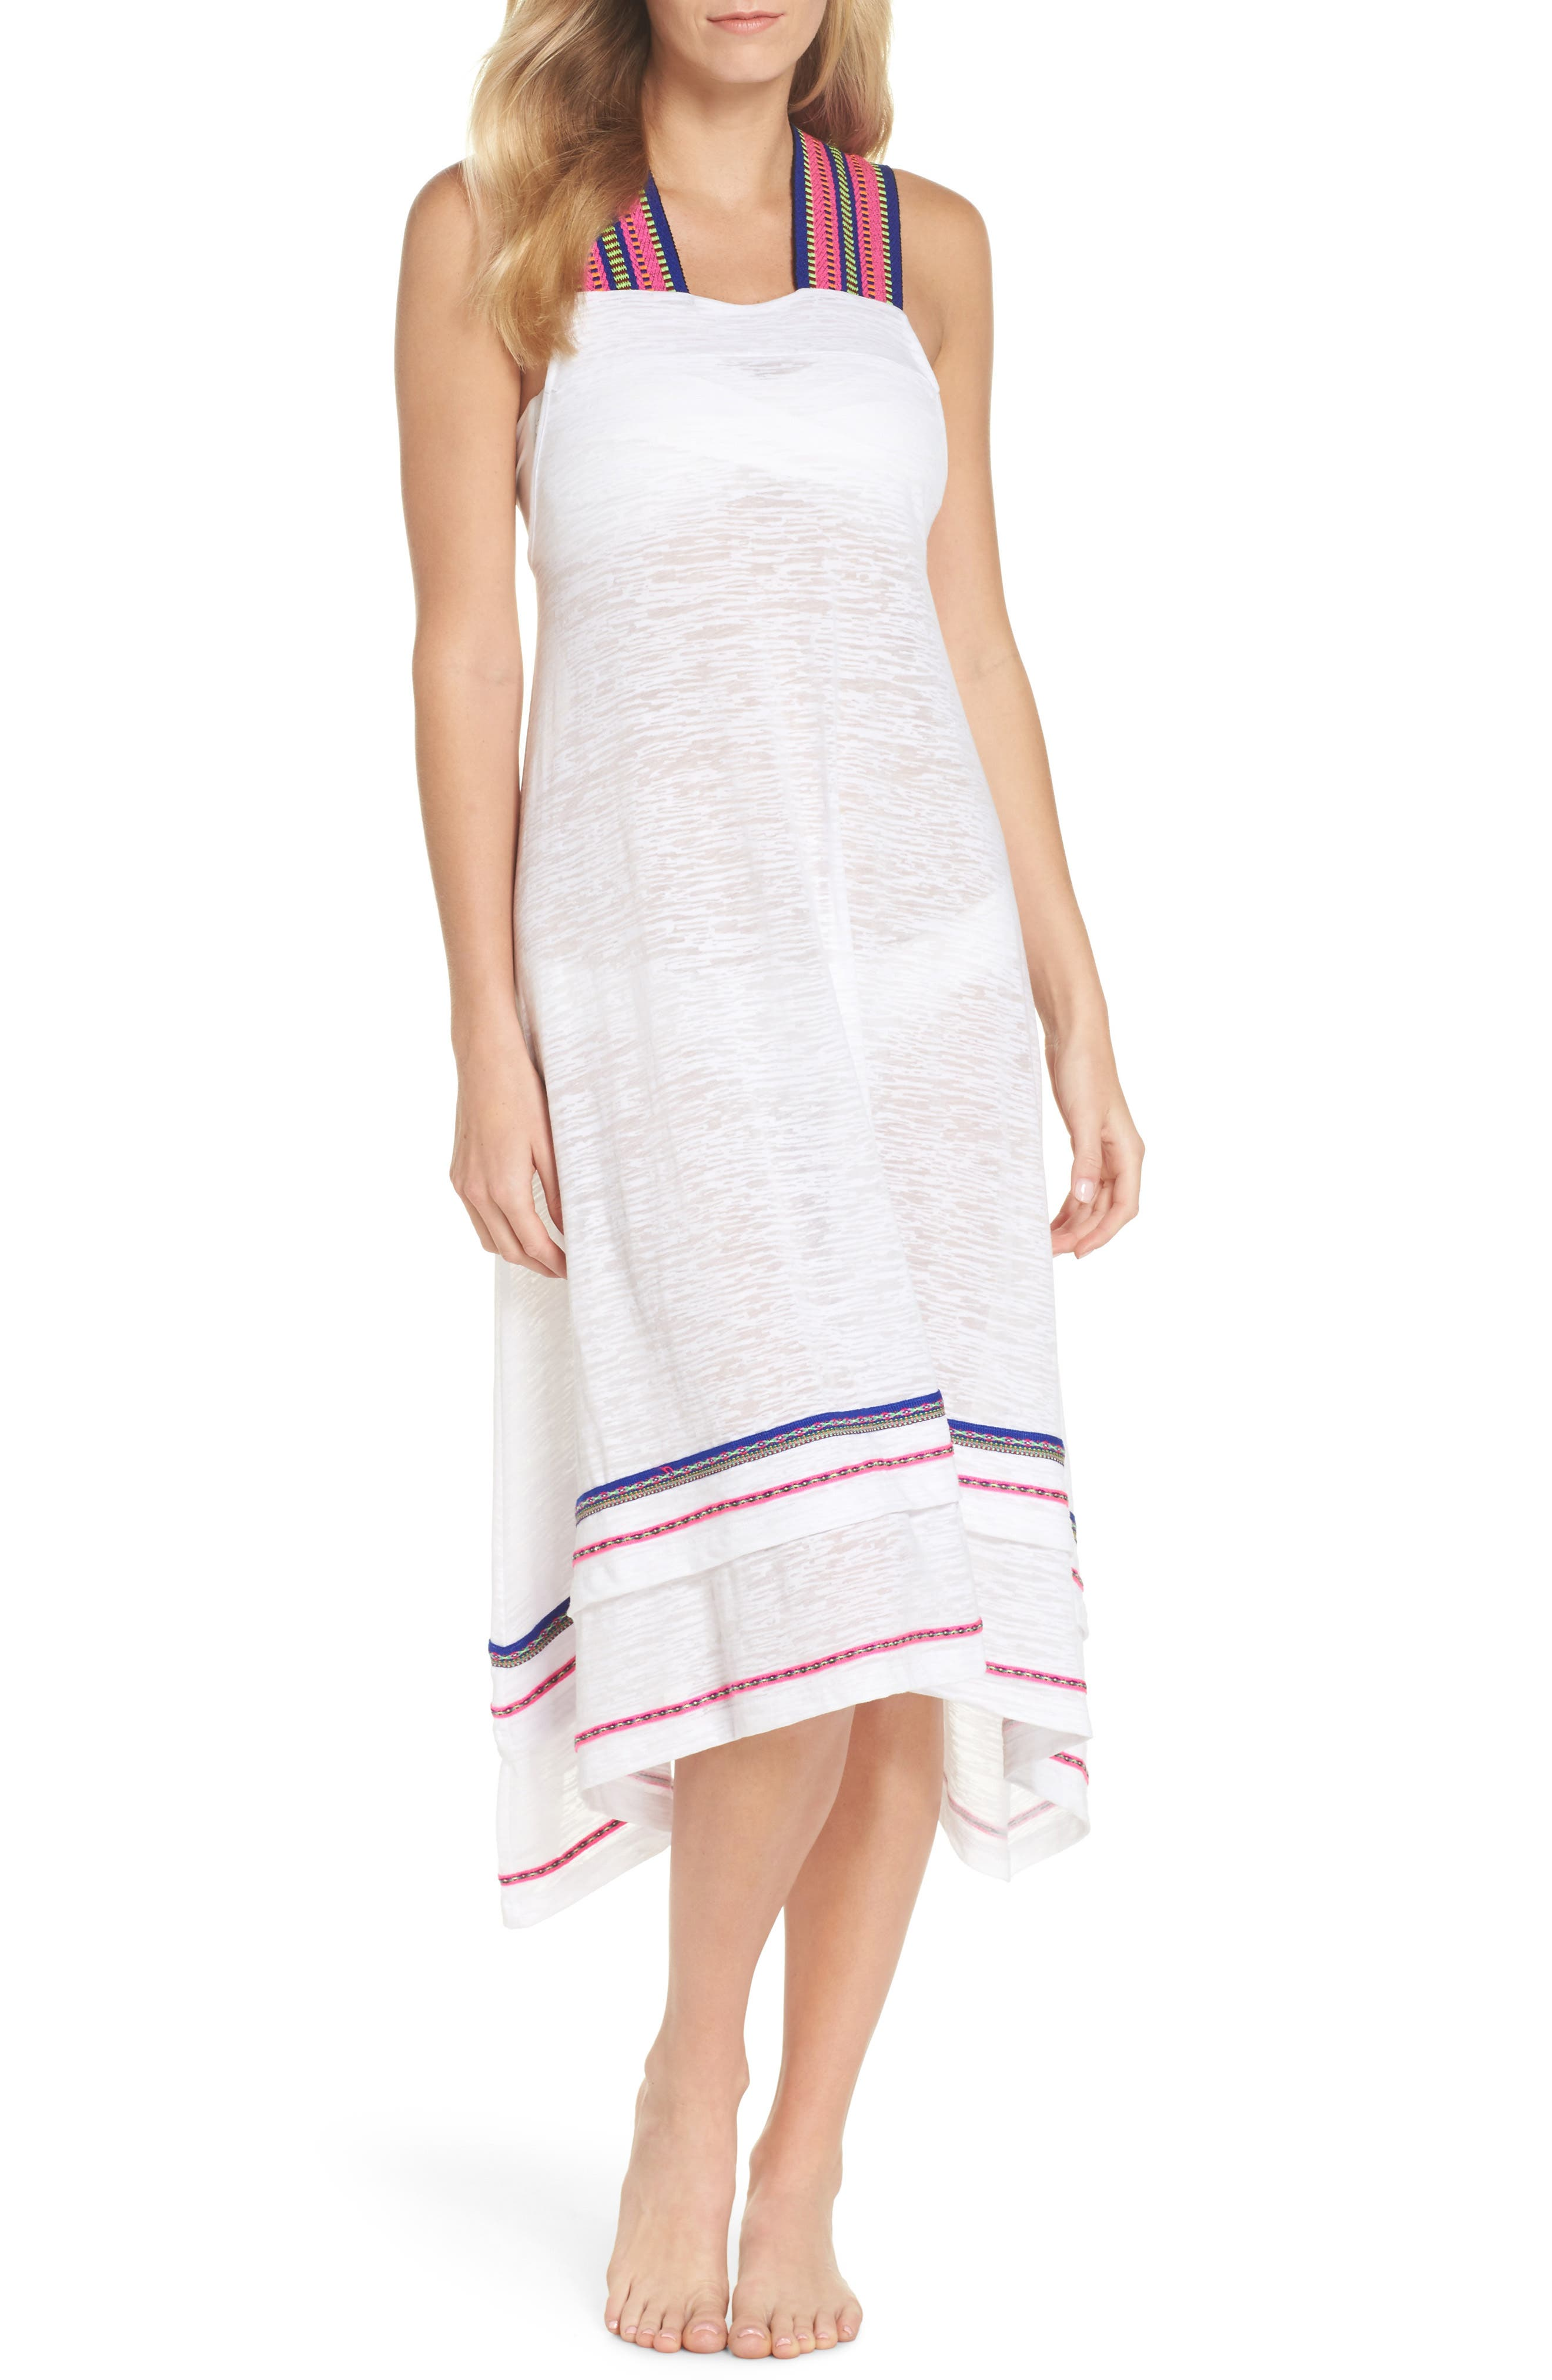 PITUSA St. Tropez Cover-Up Dress